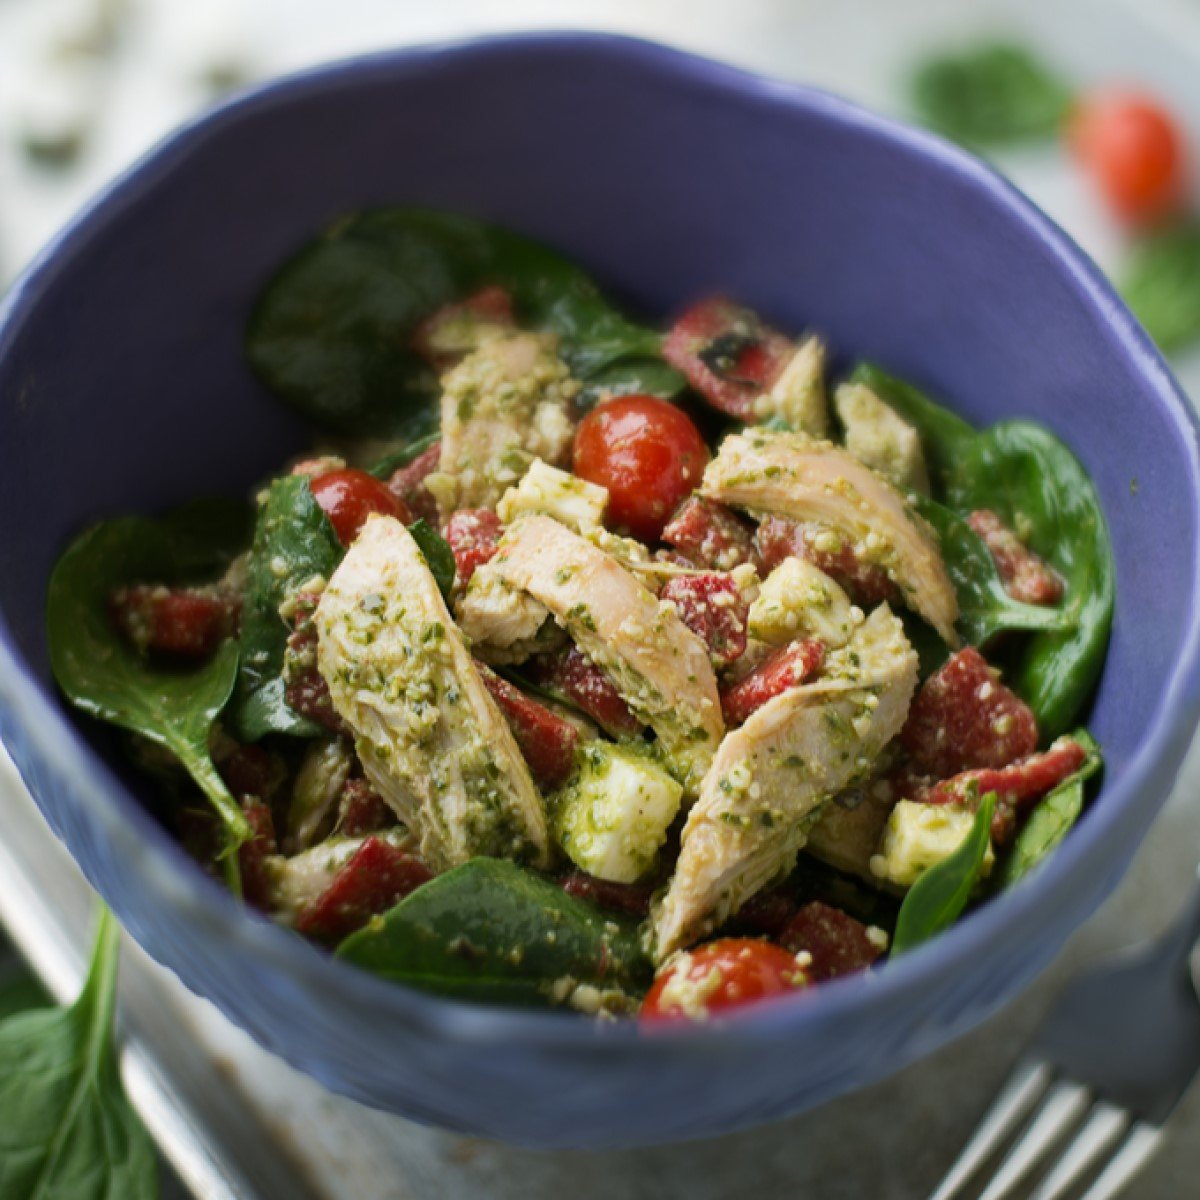 Grilled Chicken Pesto Salad Recipe